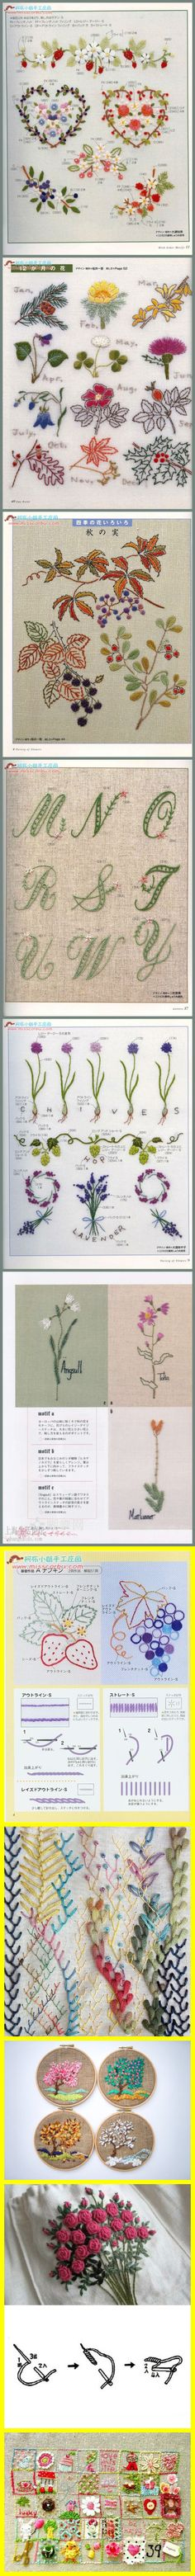 needle work:  take inspiration from the embroidery.... lovely shapes